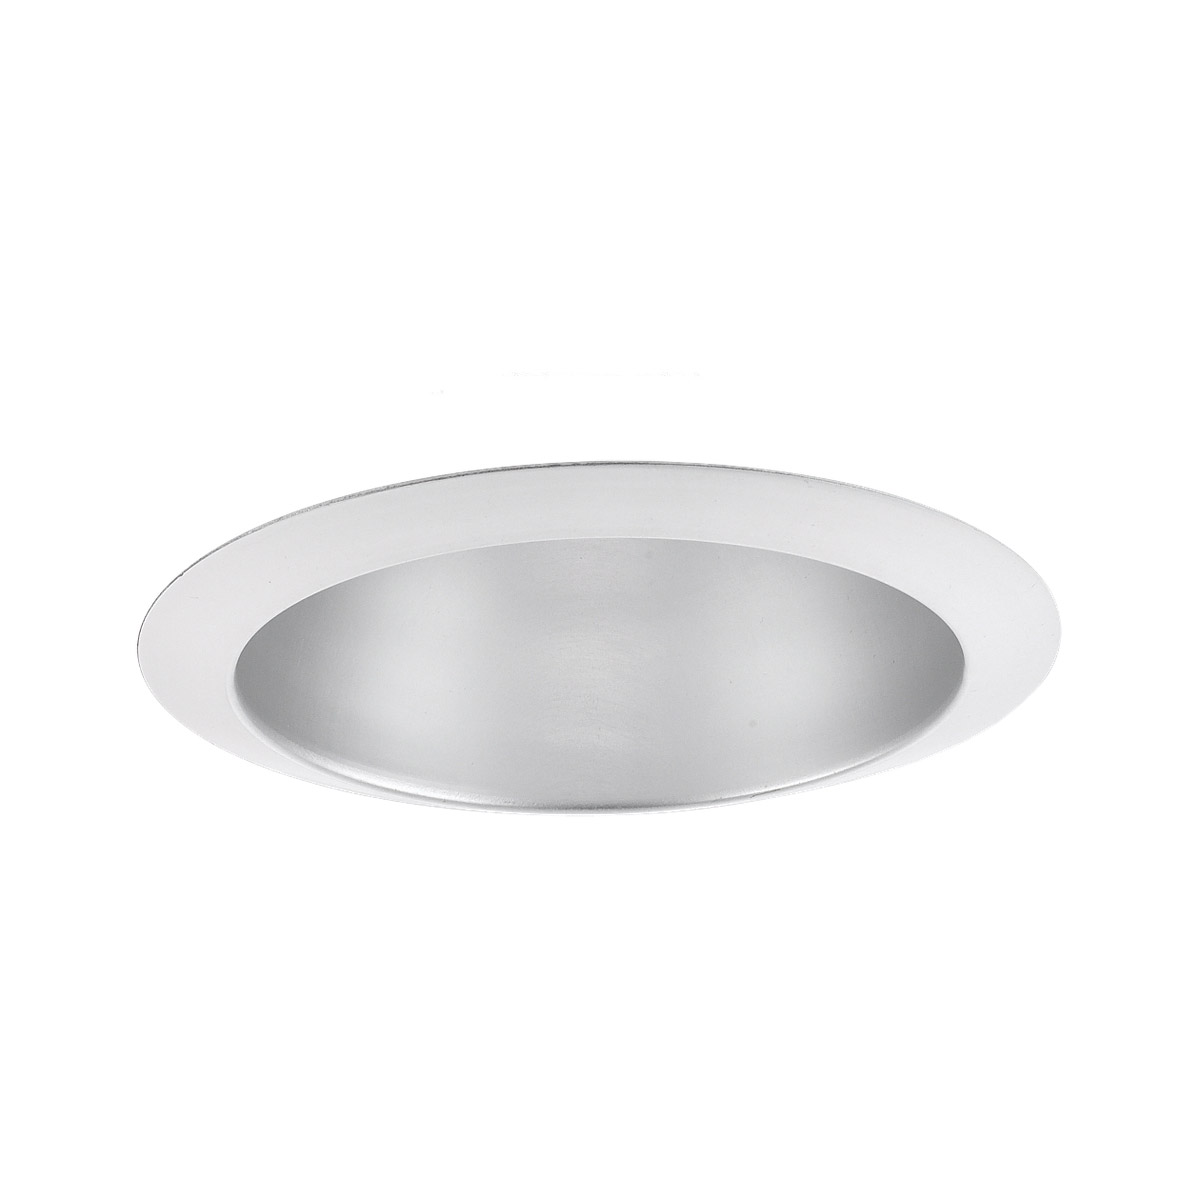 Sea Gull Lighting Signature Recessed Trim Only in Satin Nickel 11032AT-849 photo